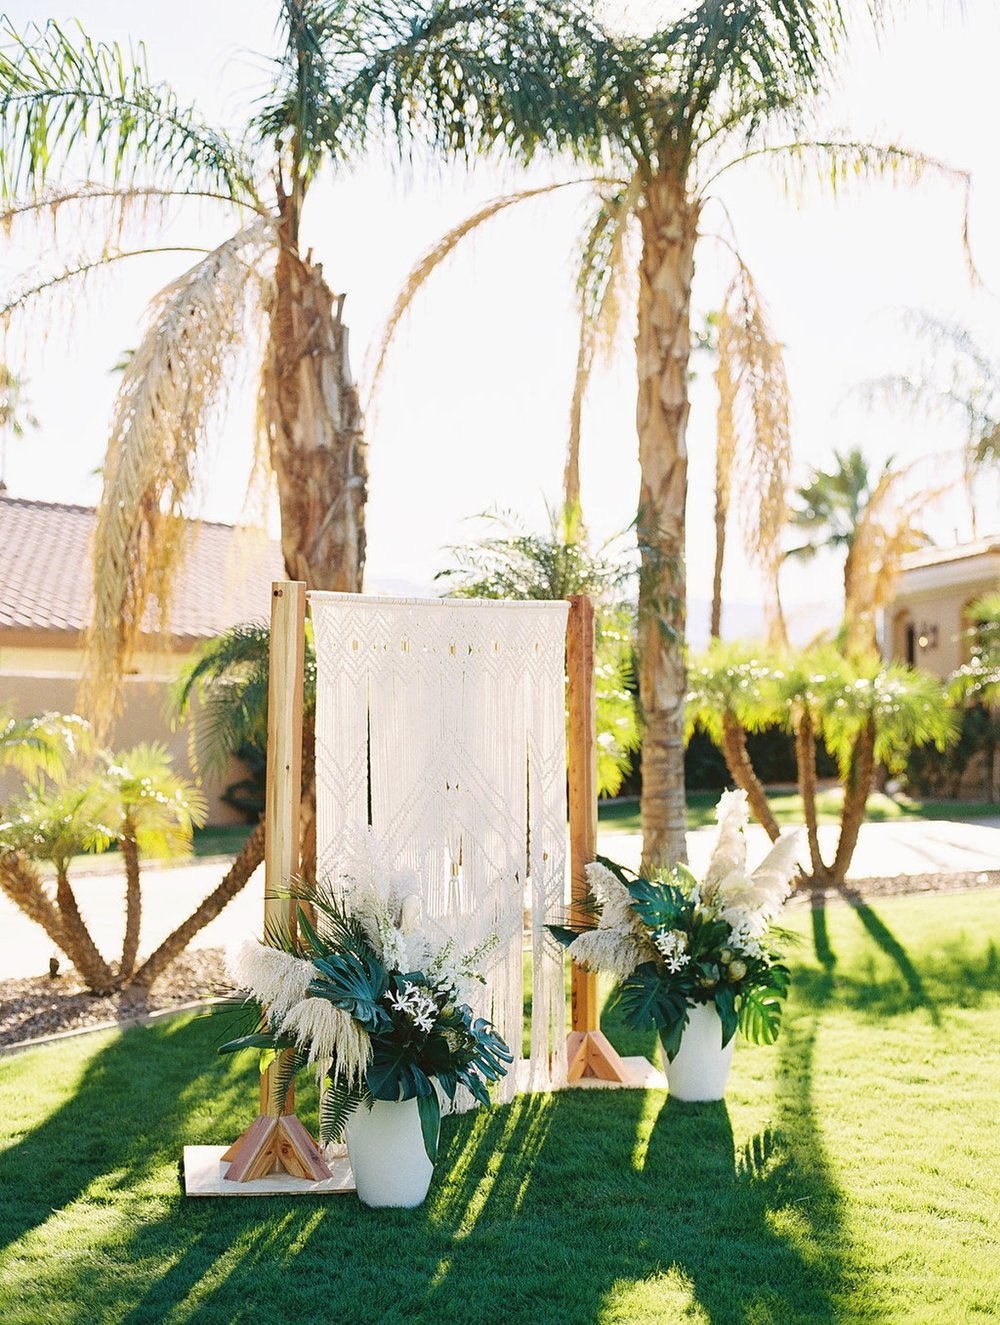 Phi and Alannas Backyard Wedding in Palm Springs California 17.jpg